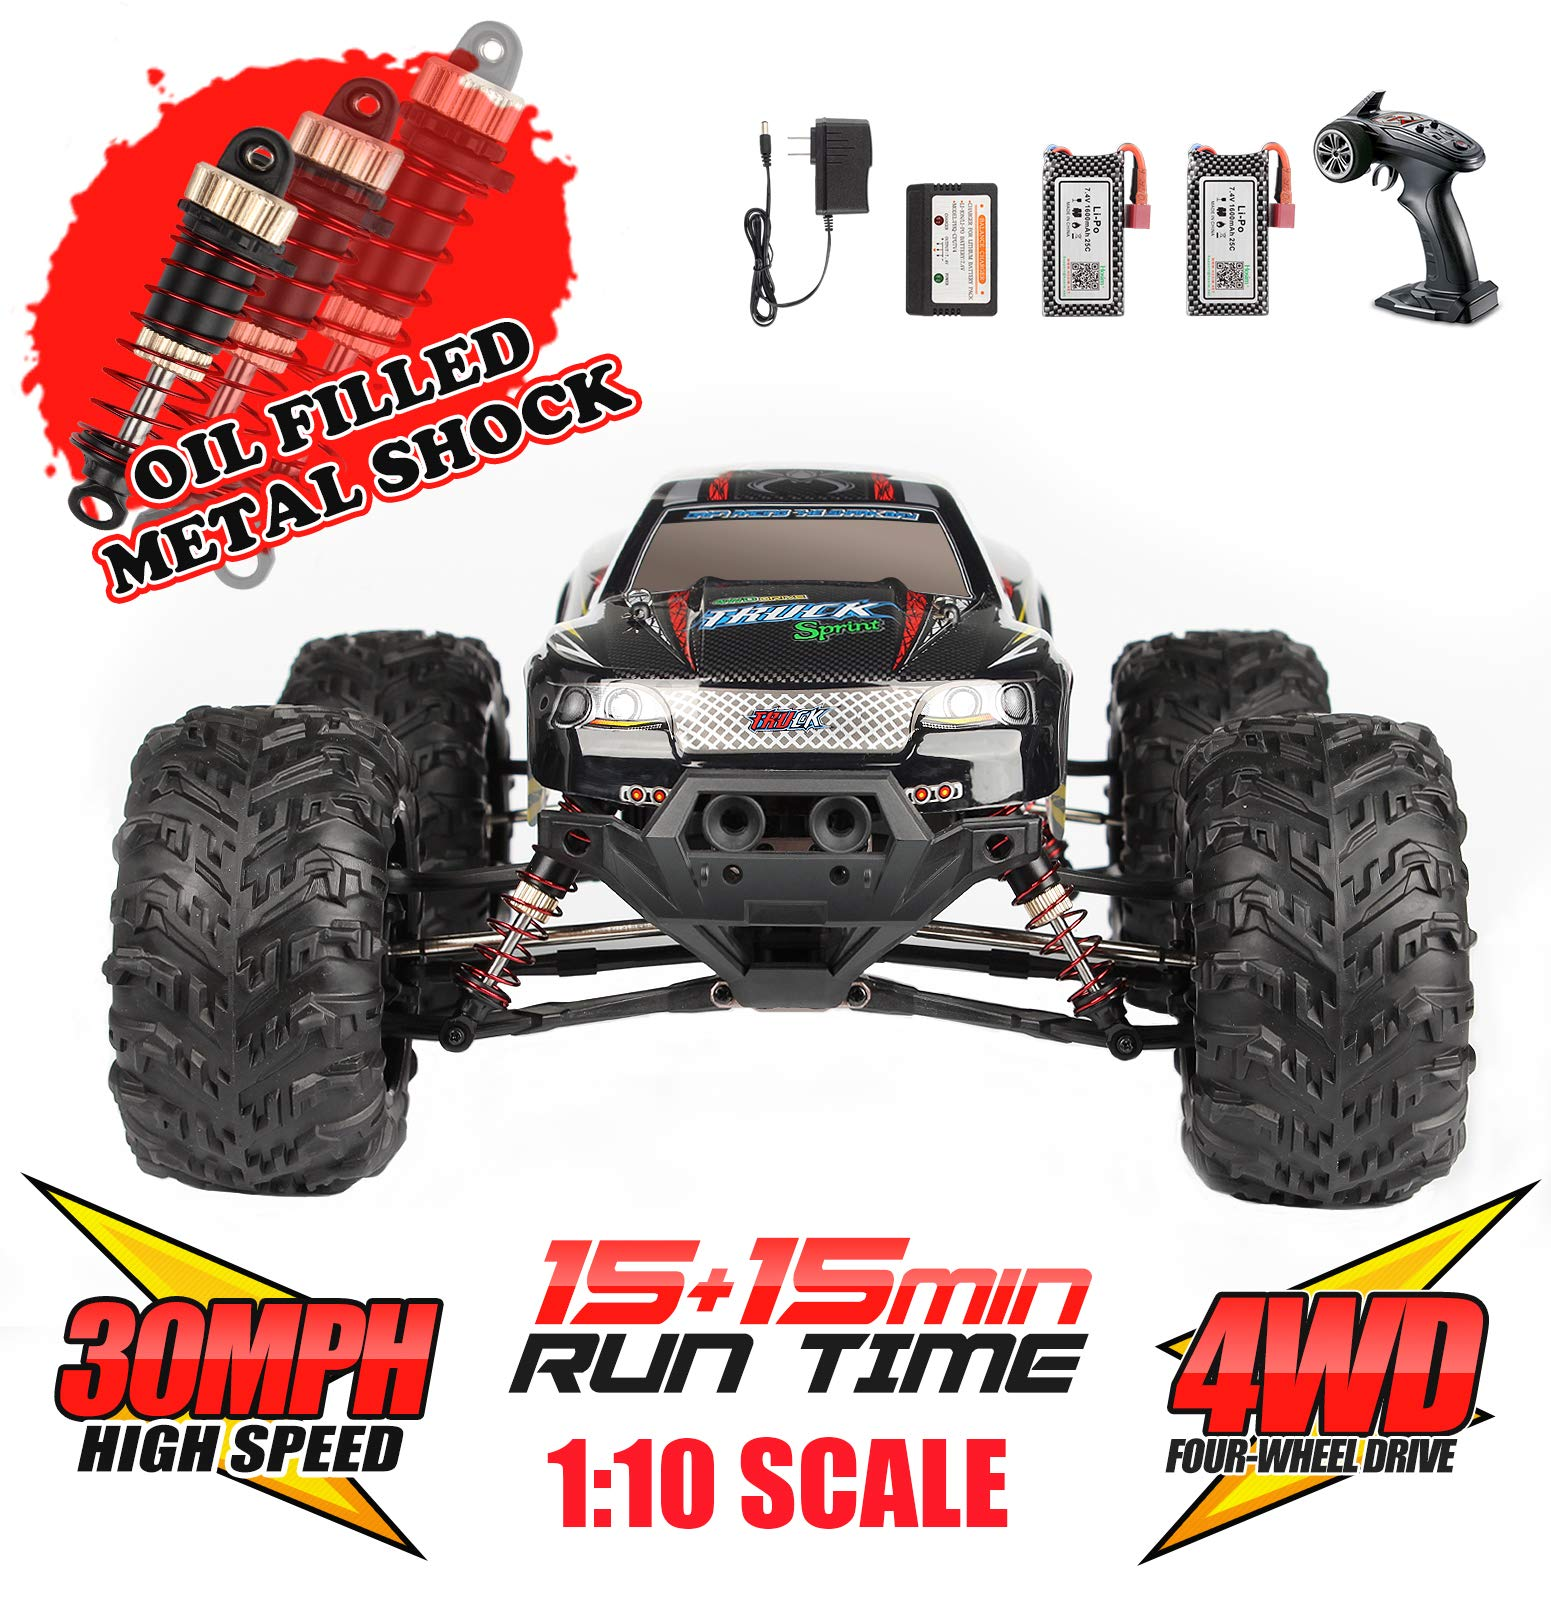 Hosim Large Size 1:10 Scale High Speed 30MPH 4WD 2.4Ghz Remote Control Truck Upgraded 9125 Radio Controlled Off-Road Electronic Monster Truck R/C RTR Hobby RC Car | 2 Batteries | 6 Oil Filled Shocks|